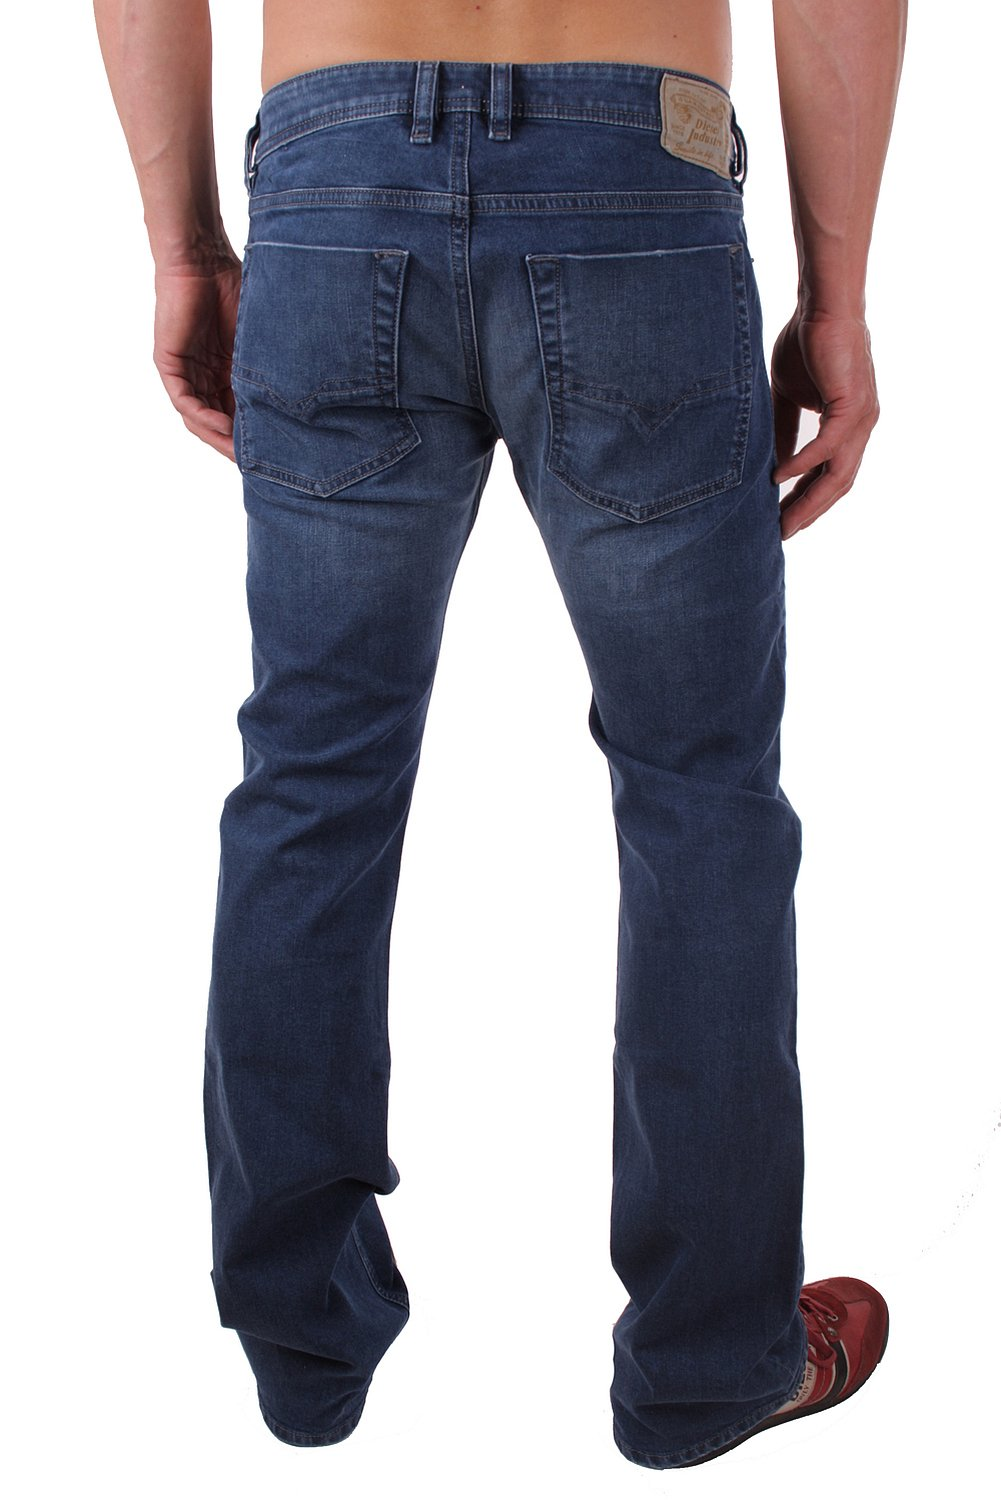 diesel zatiny 0rn18 stretch herren jeans hose regular bootcut ebay. Black Bedroom Furniture Sets. Home Design Ideas